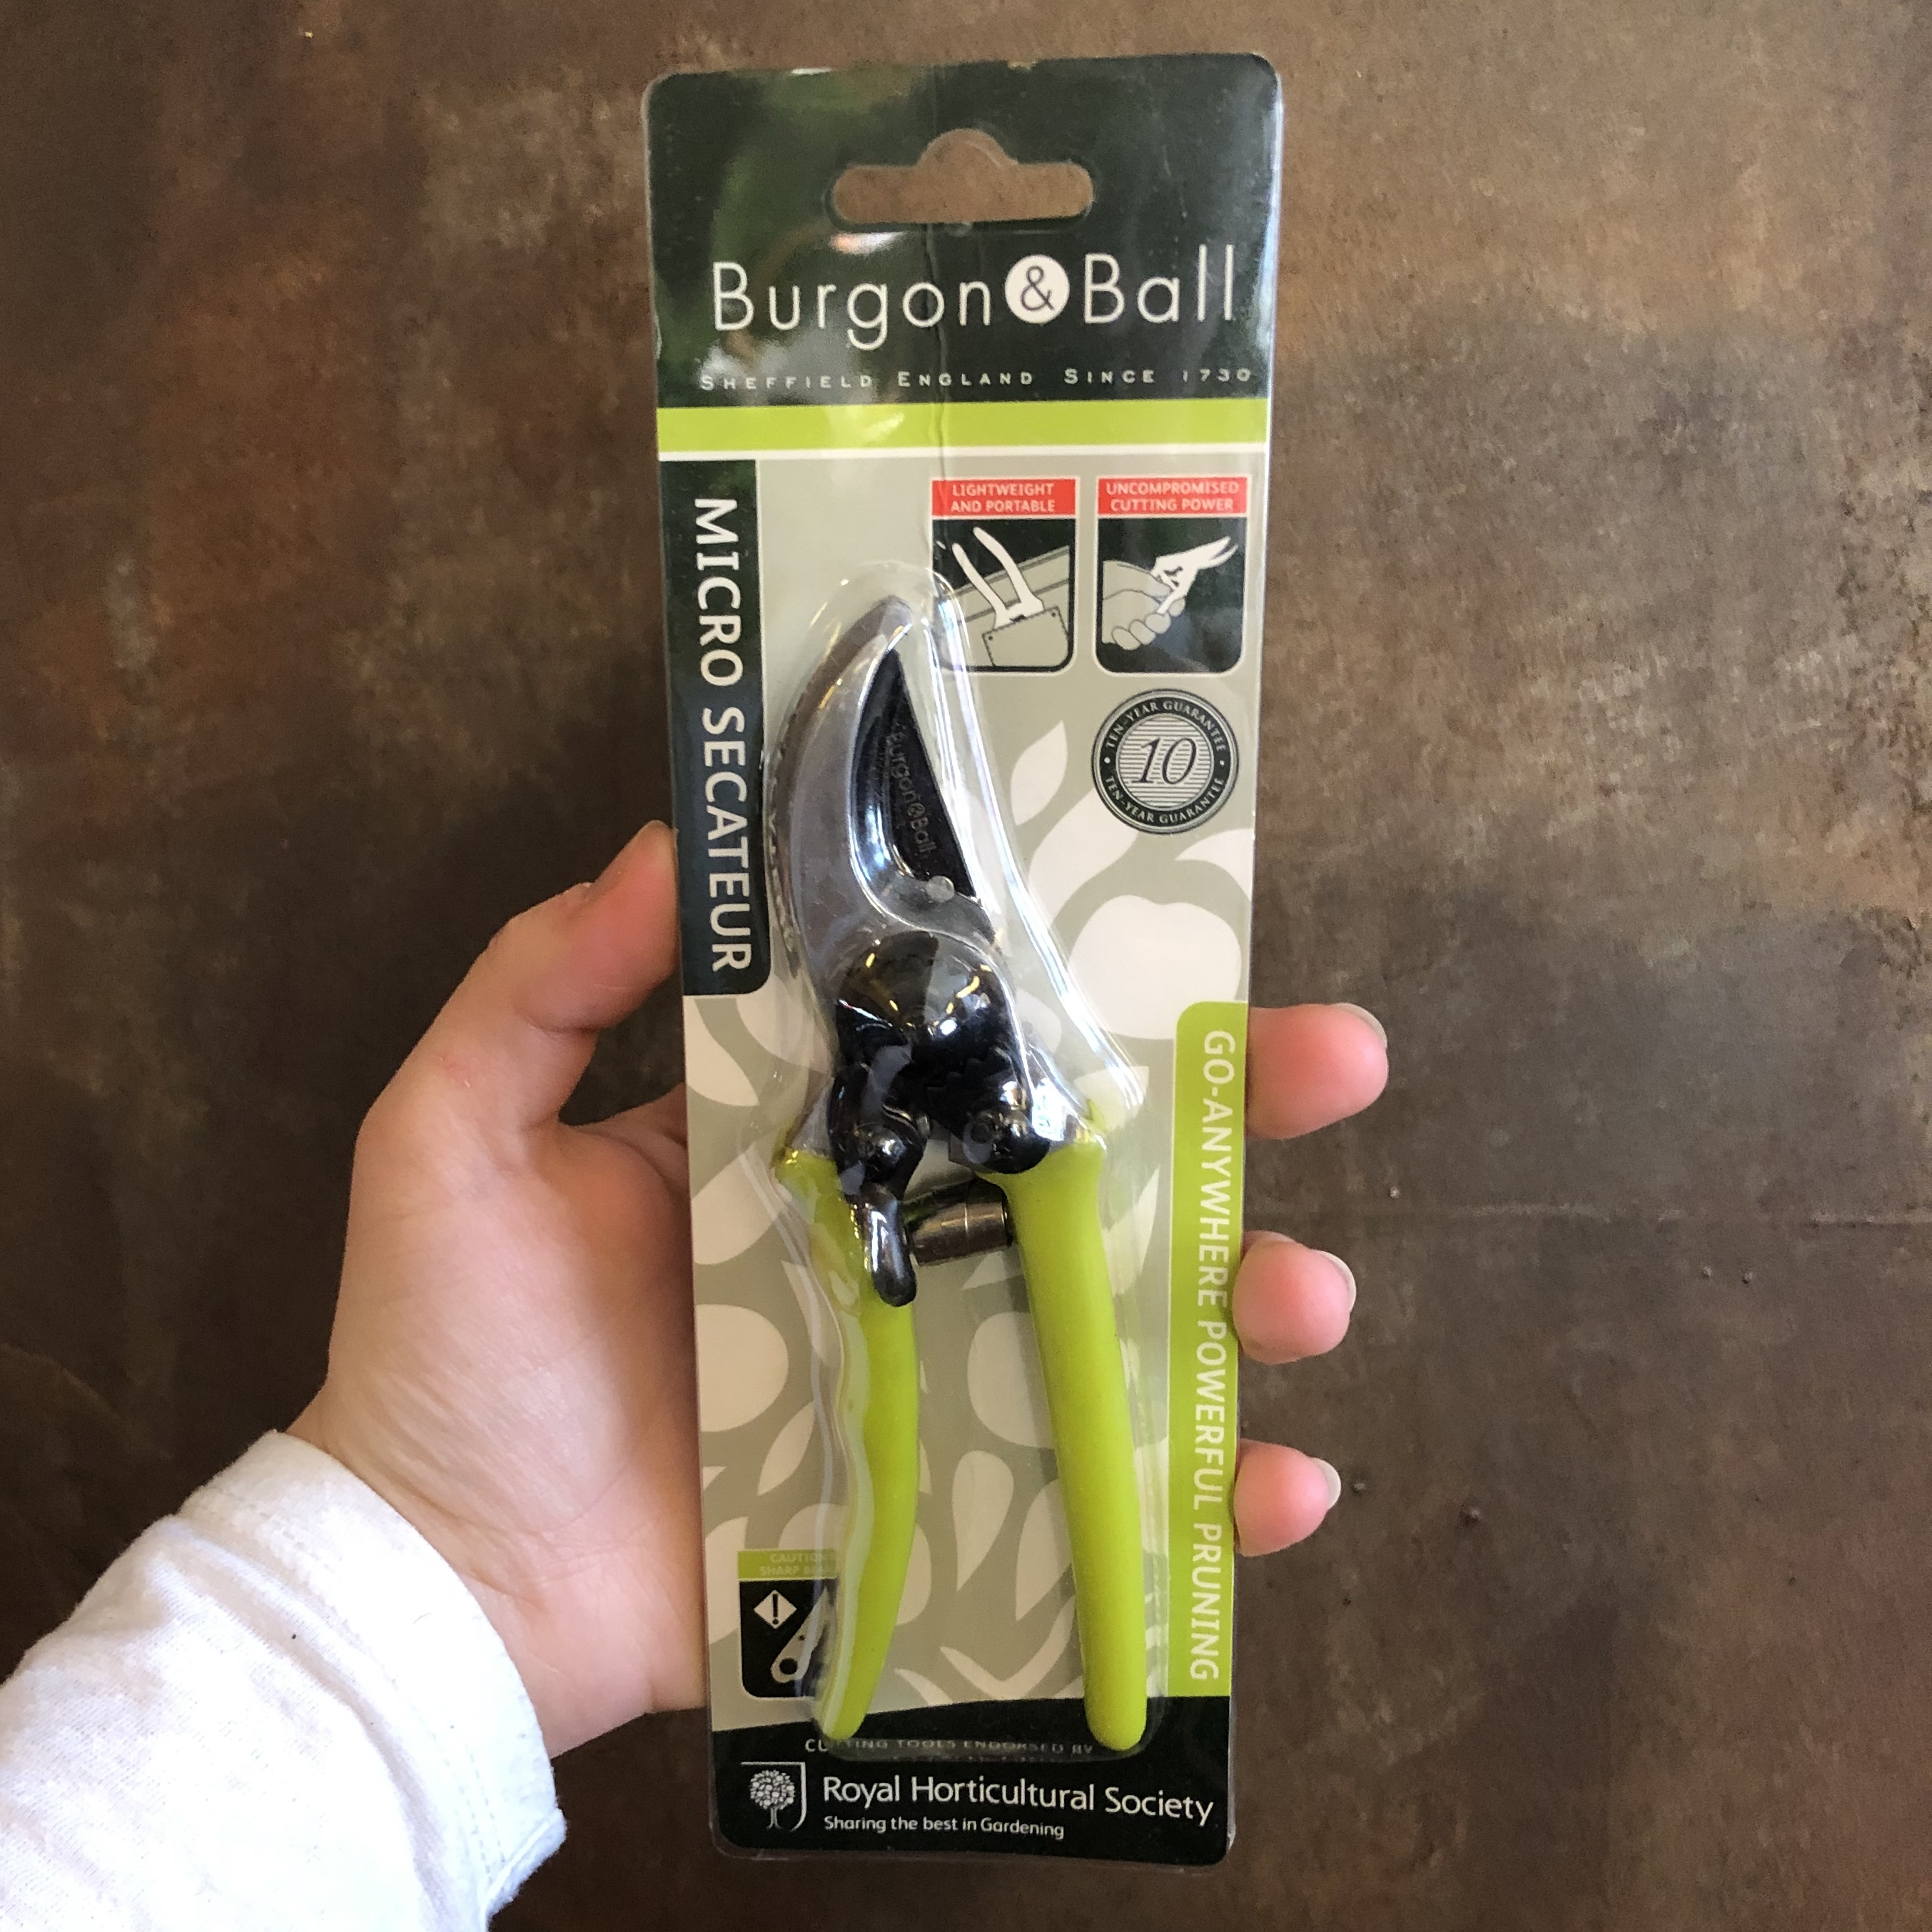 Micro Secateurs by Burgon & Ball